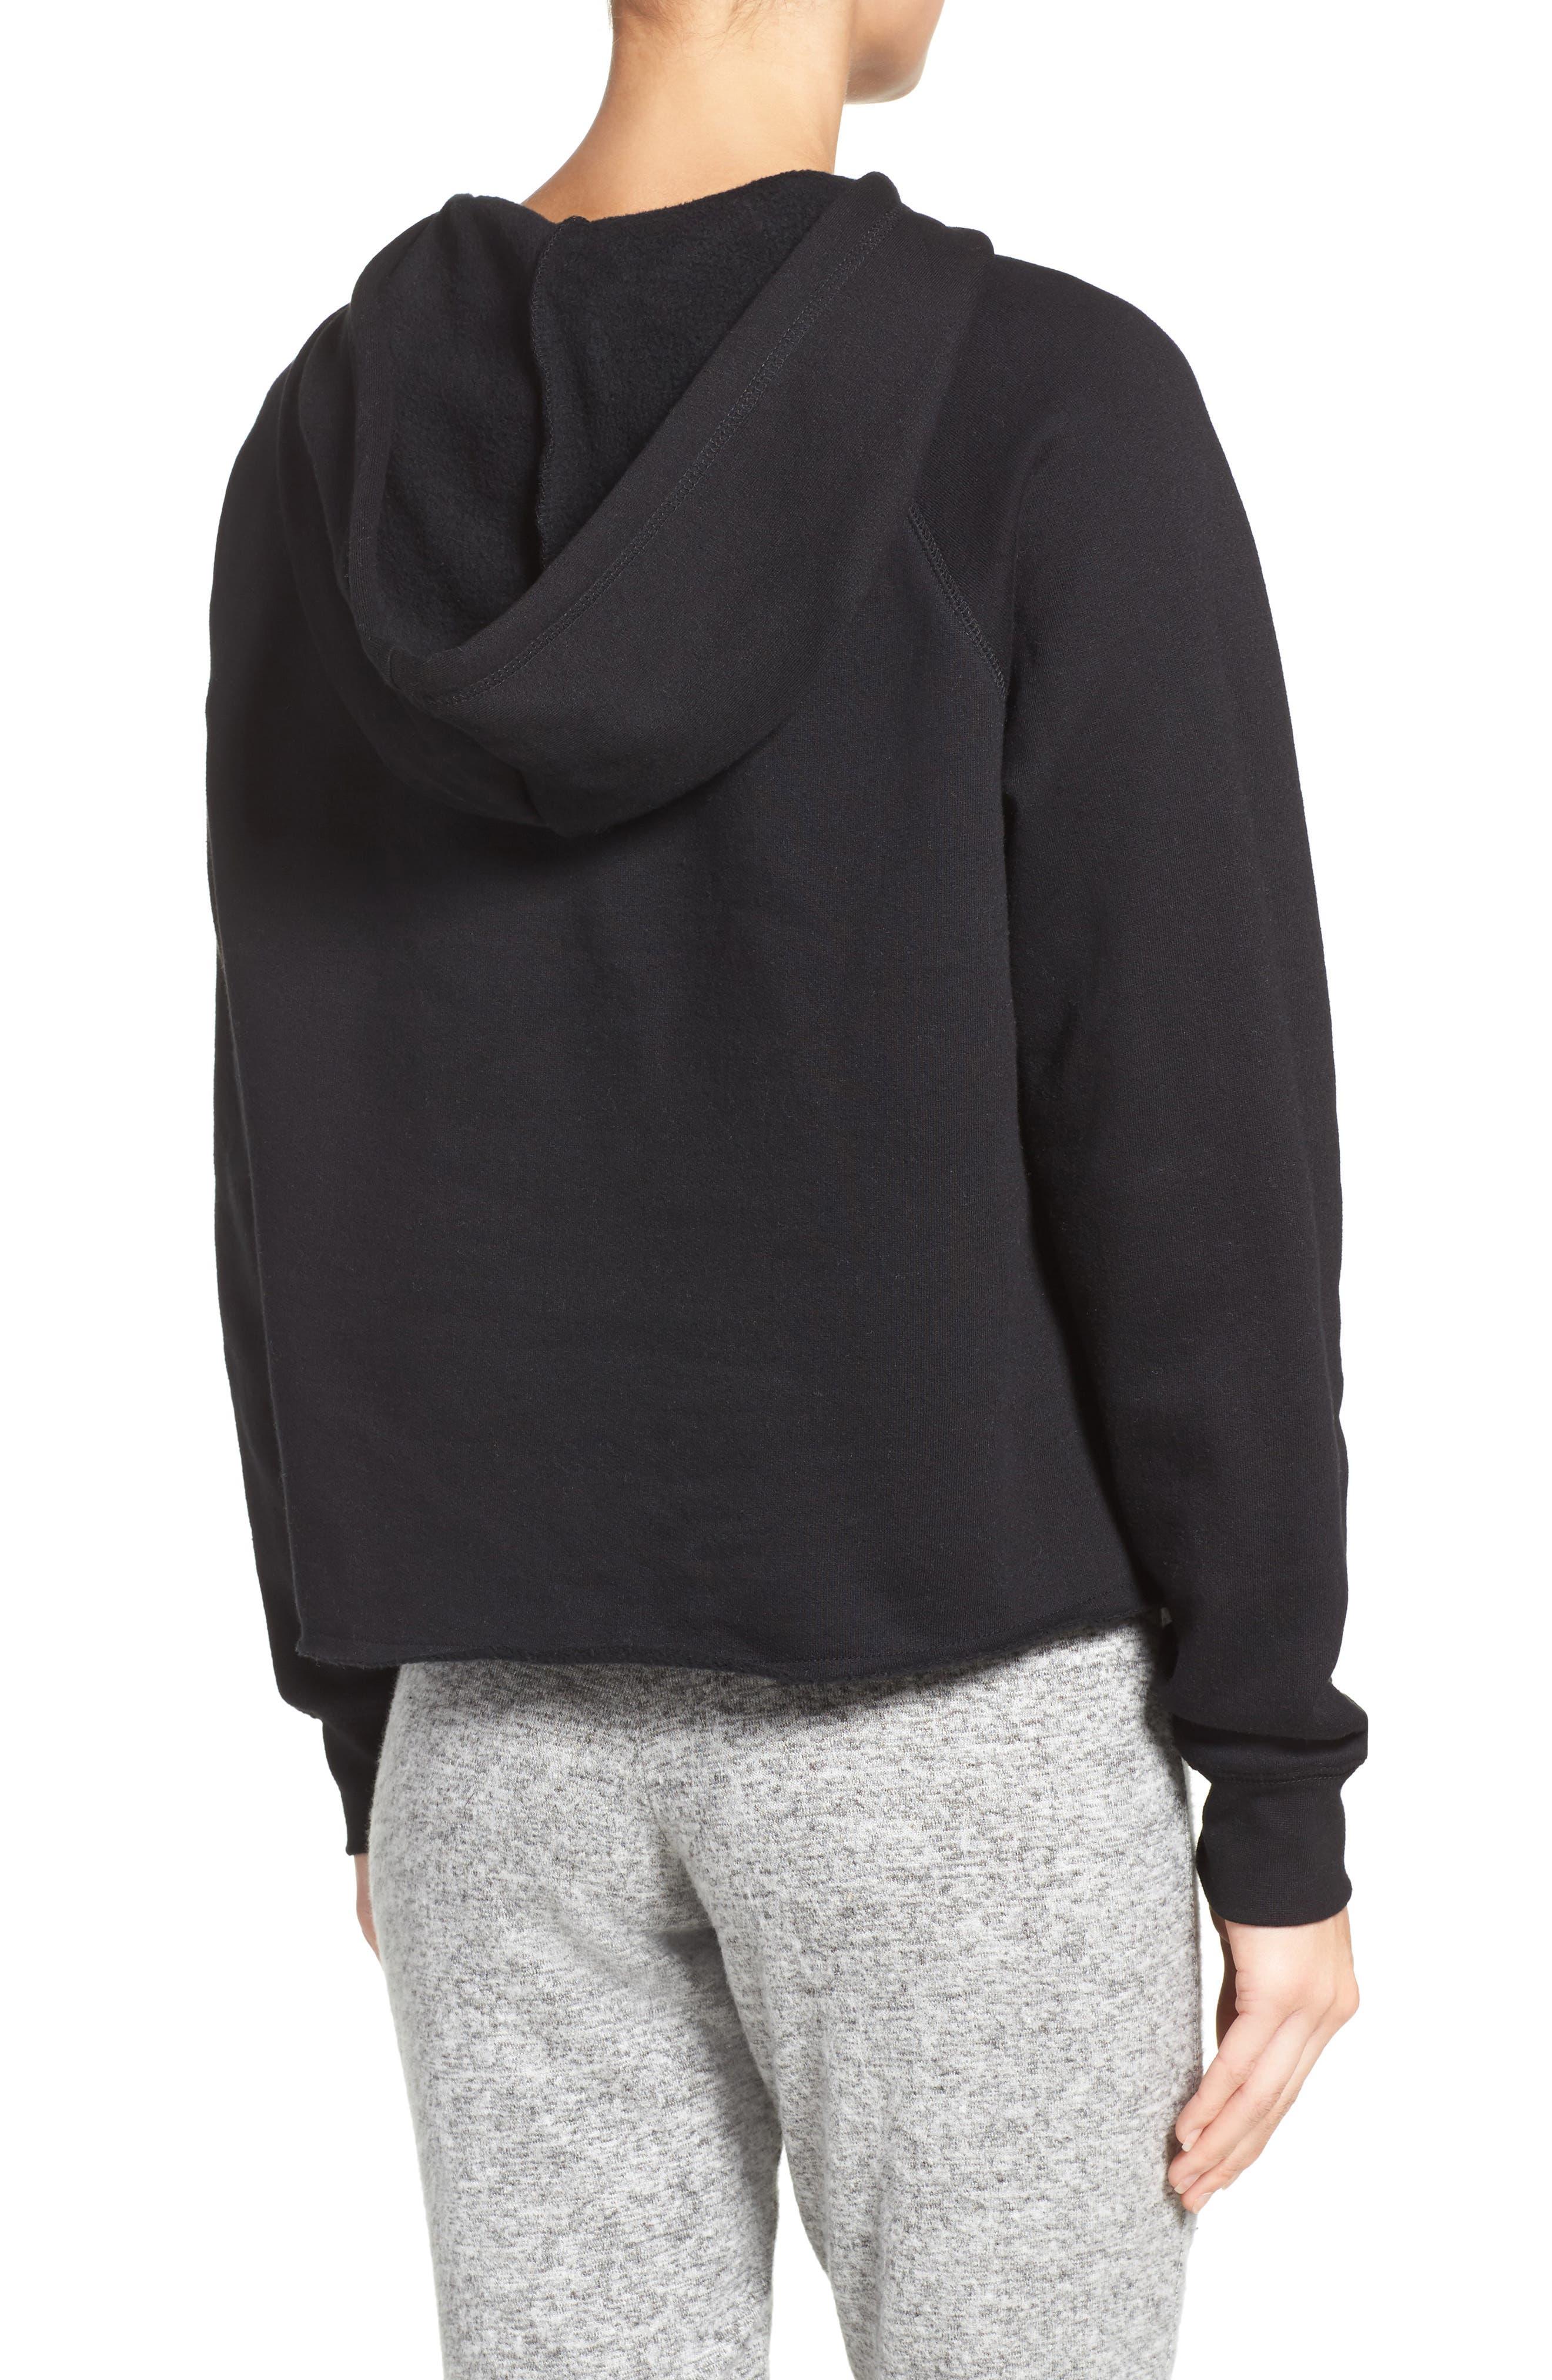 Brunette Lounge Hoodie,                             Alternate thumbnail 2, color,                             001